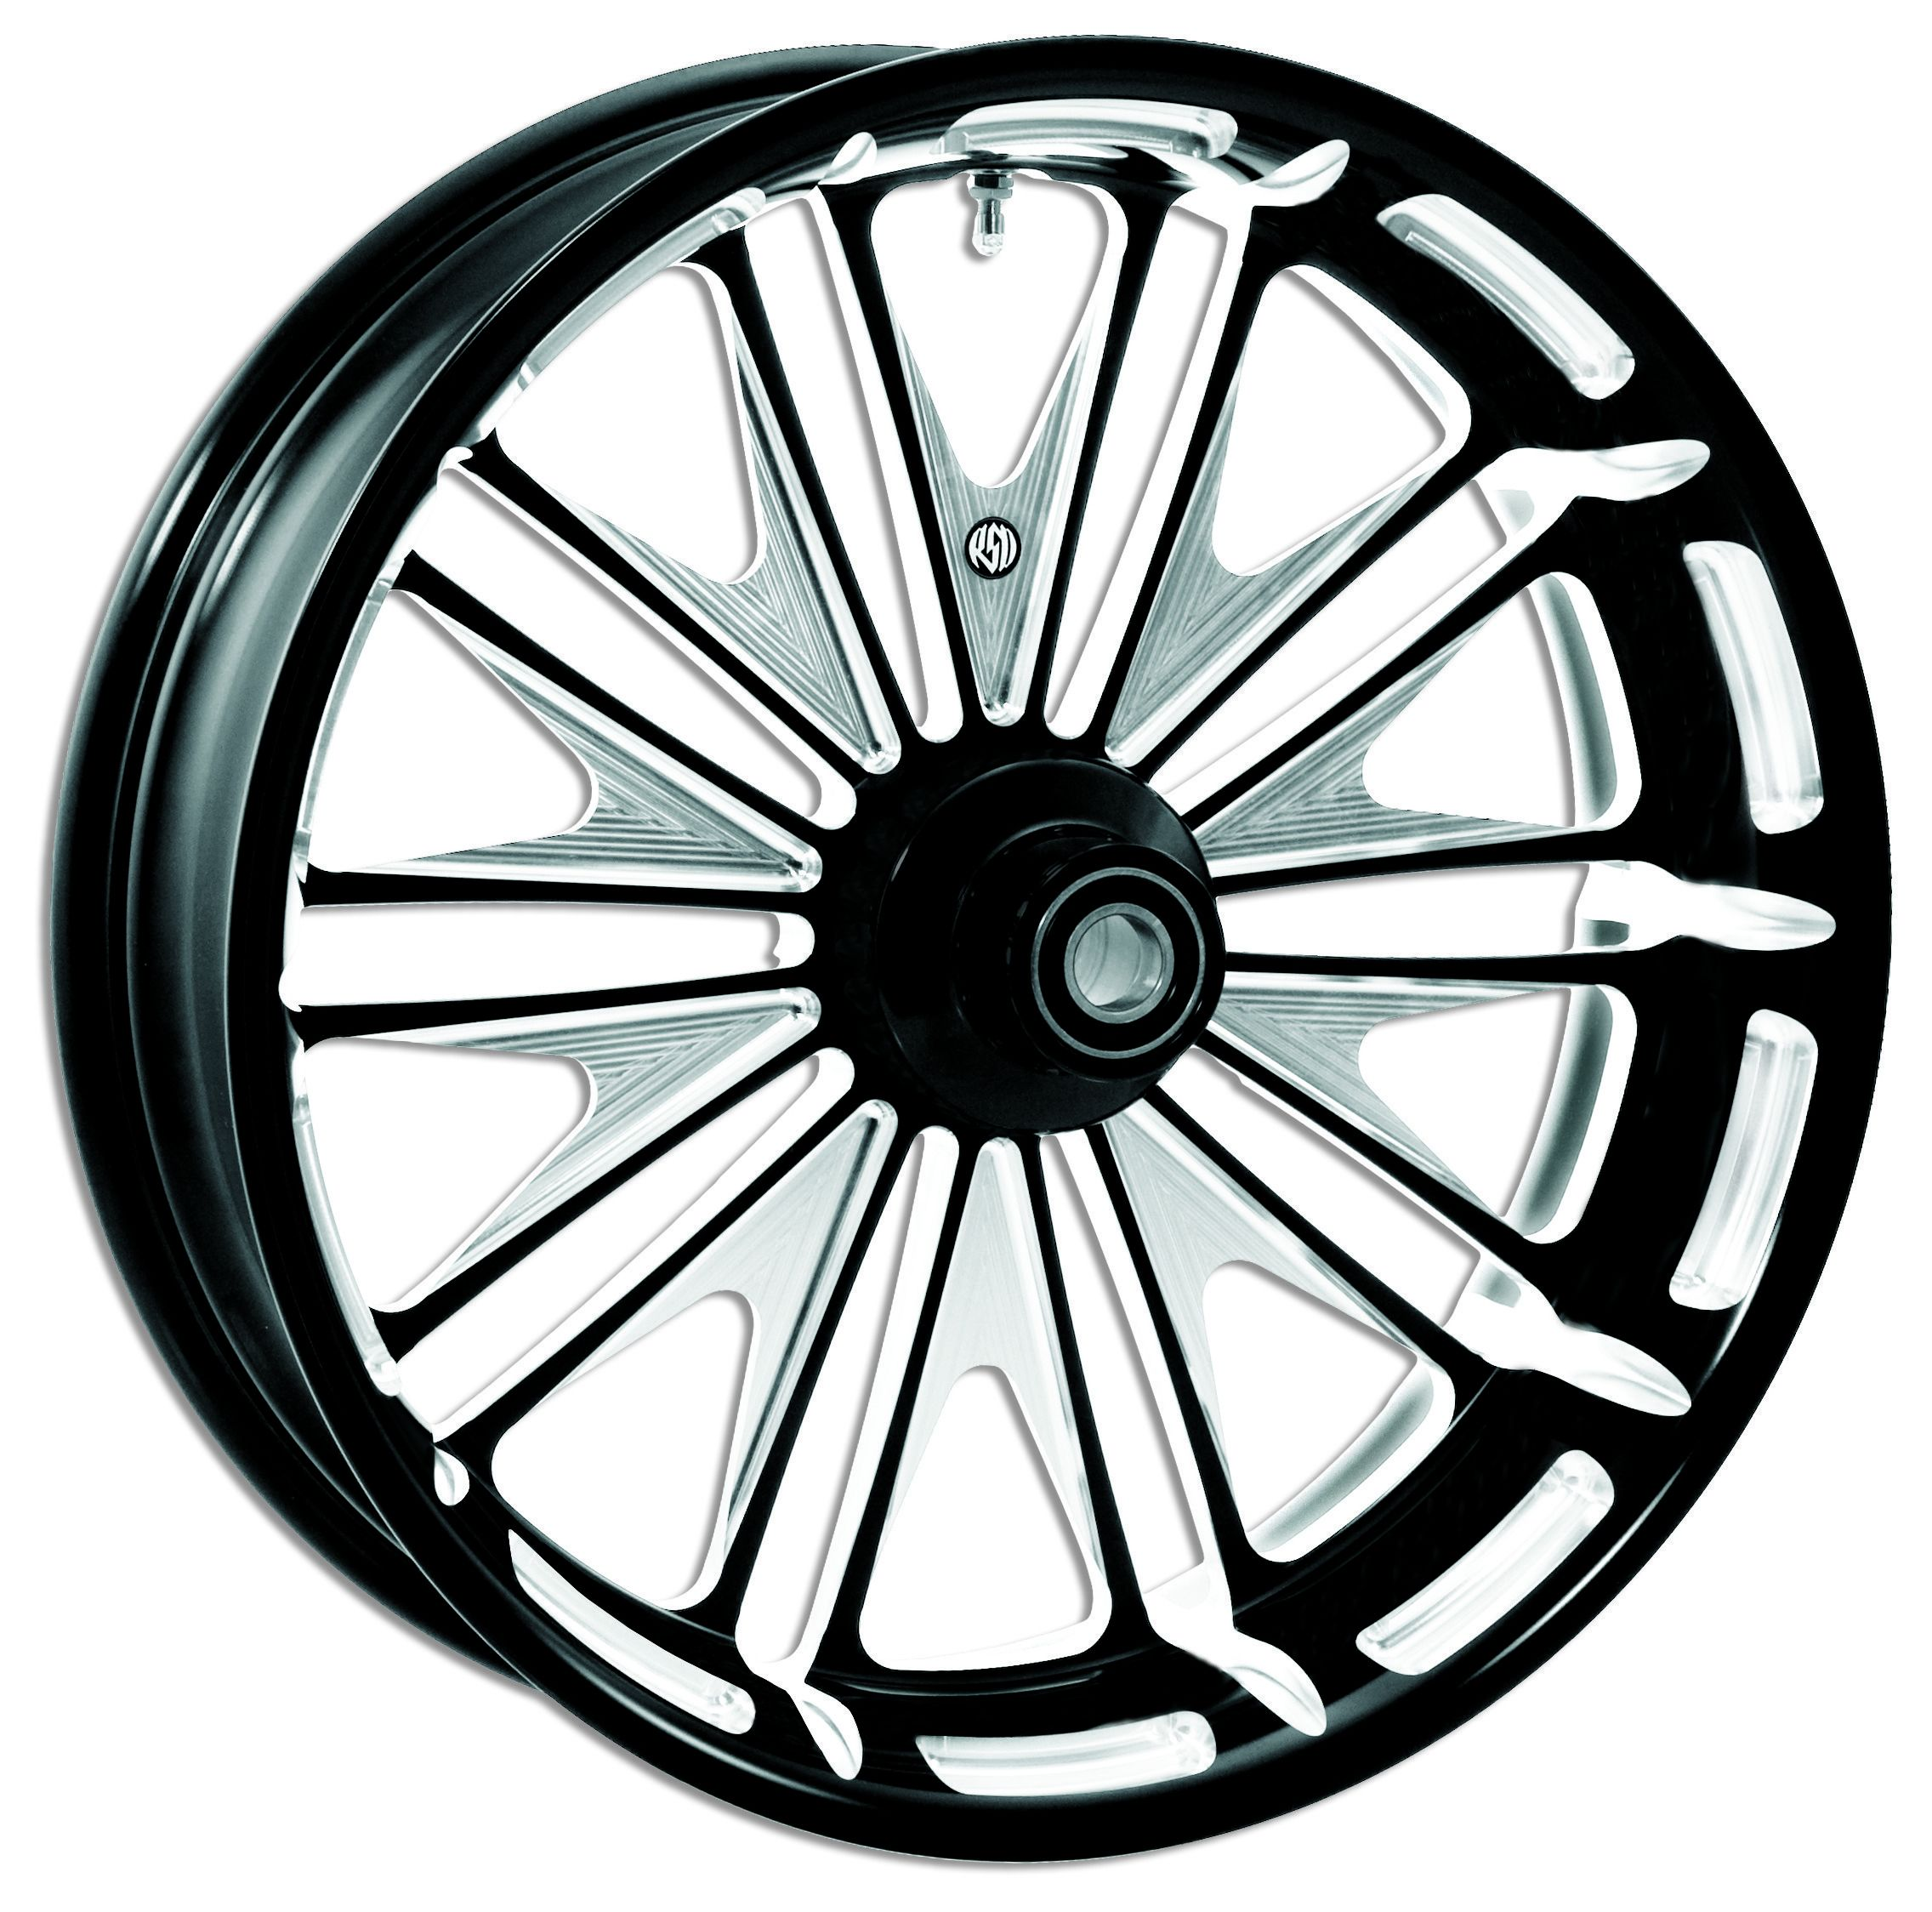 roland sands 21 x 2 15 front wheel for harley softail 2007 2013 Softail Road Glide Conversion roland sands 21 x 2 15 front wheel for harley softail 2007 2013